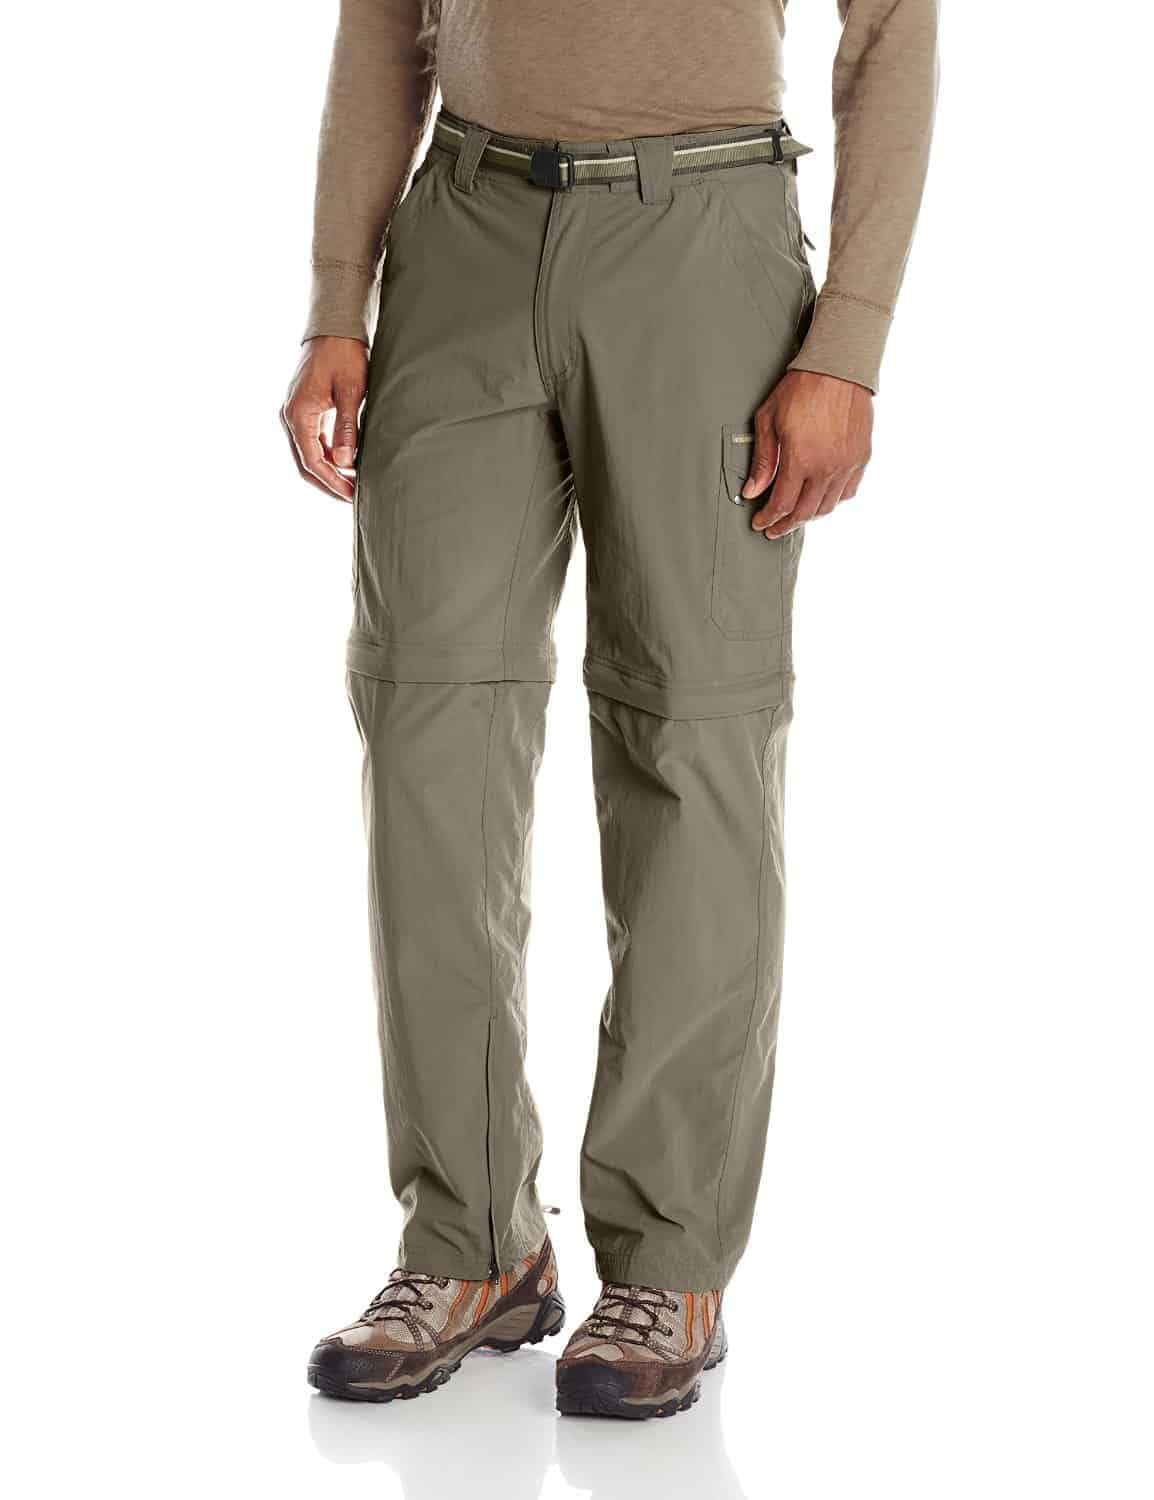 Shop the best selection of men's hiking and climbing pants at fabulousdown4allb7.cf, where you'll find premium outdoor gear and clothing and experts to guide you through selection.